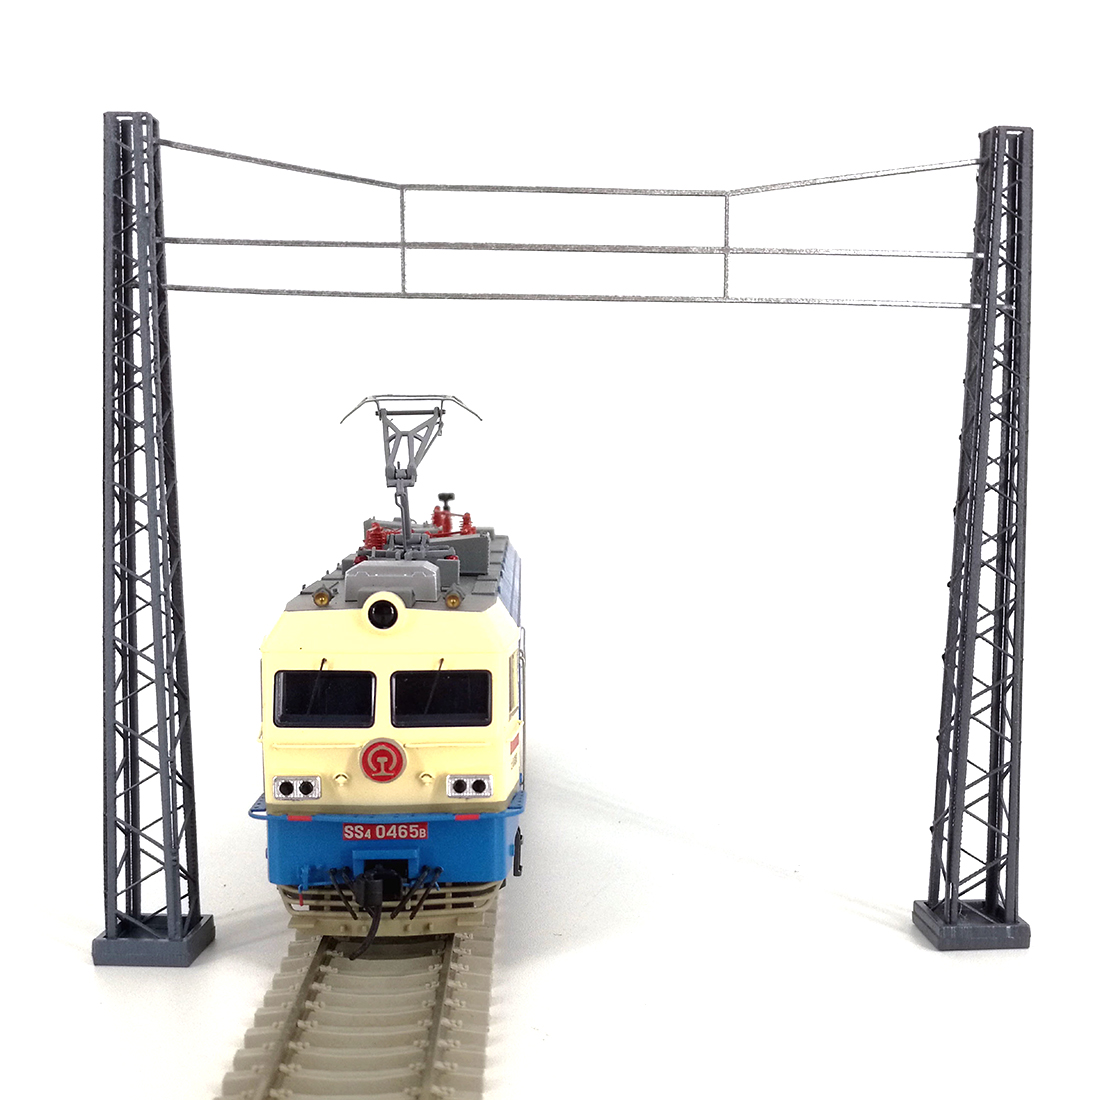 6 Pcs 1:87 HO Scale Train Railway Scene Decoration Crossing Net Wire Model For Sand Table